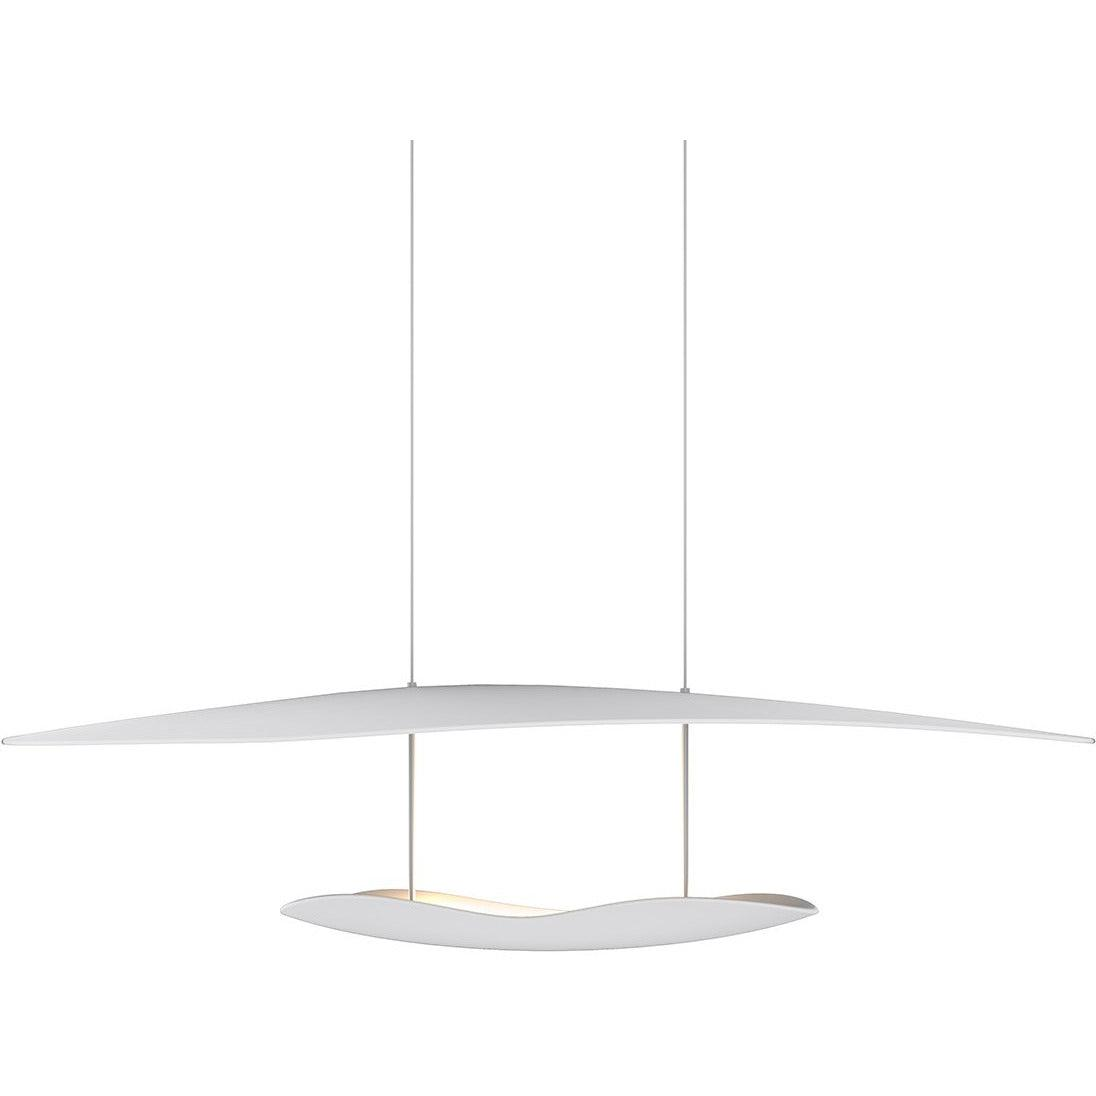 Sonneman - A Way of Light - 2669.03 - LED Pendant - Infinity Reflections - Satin White